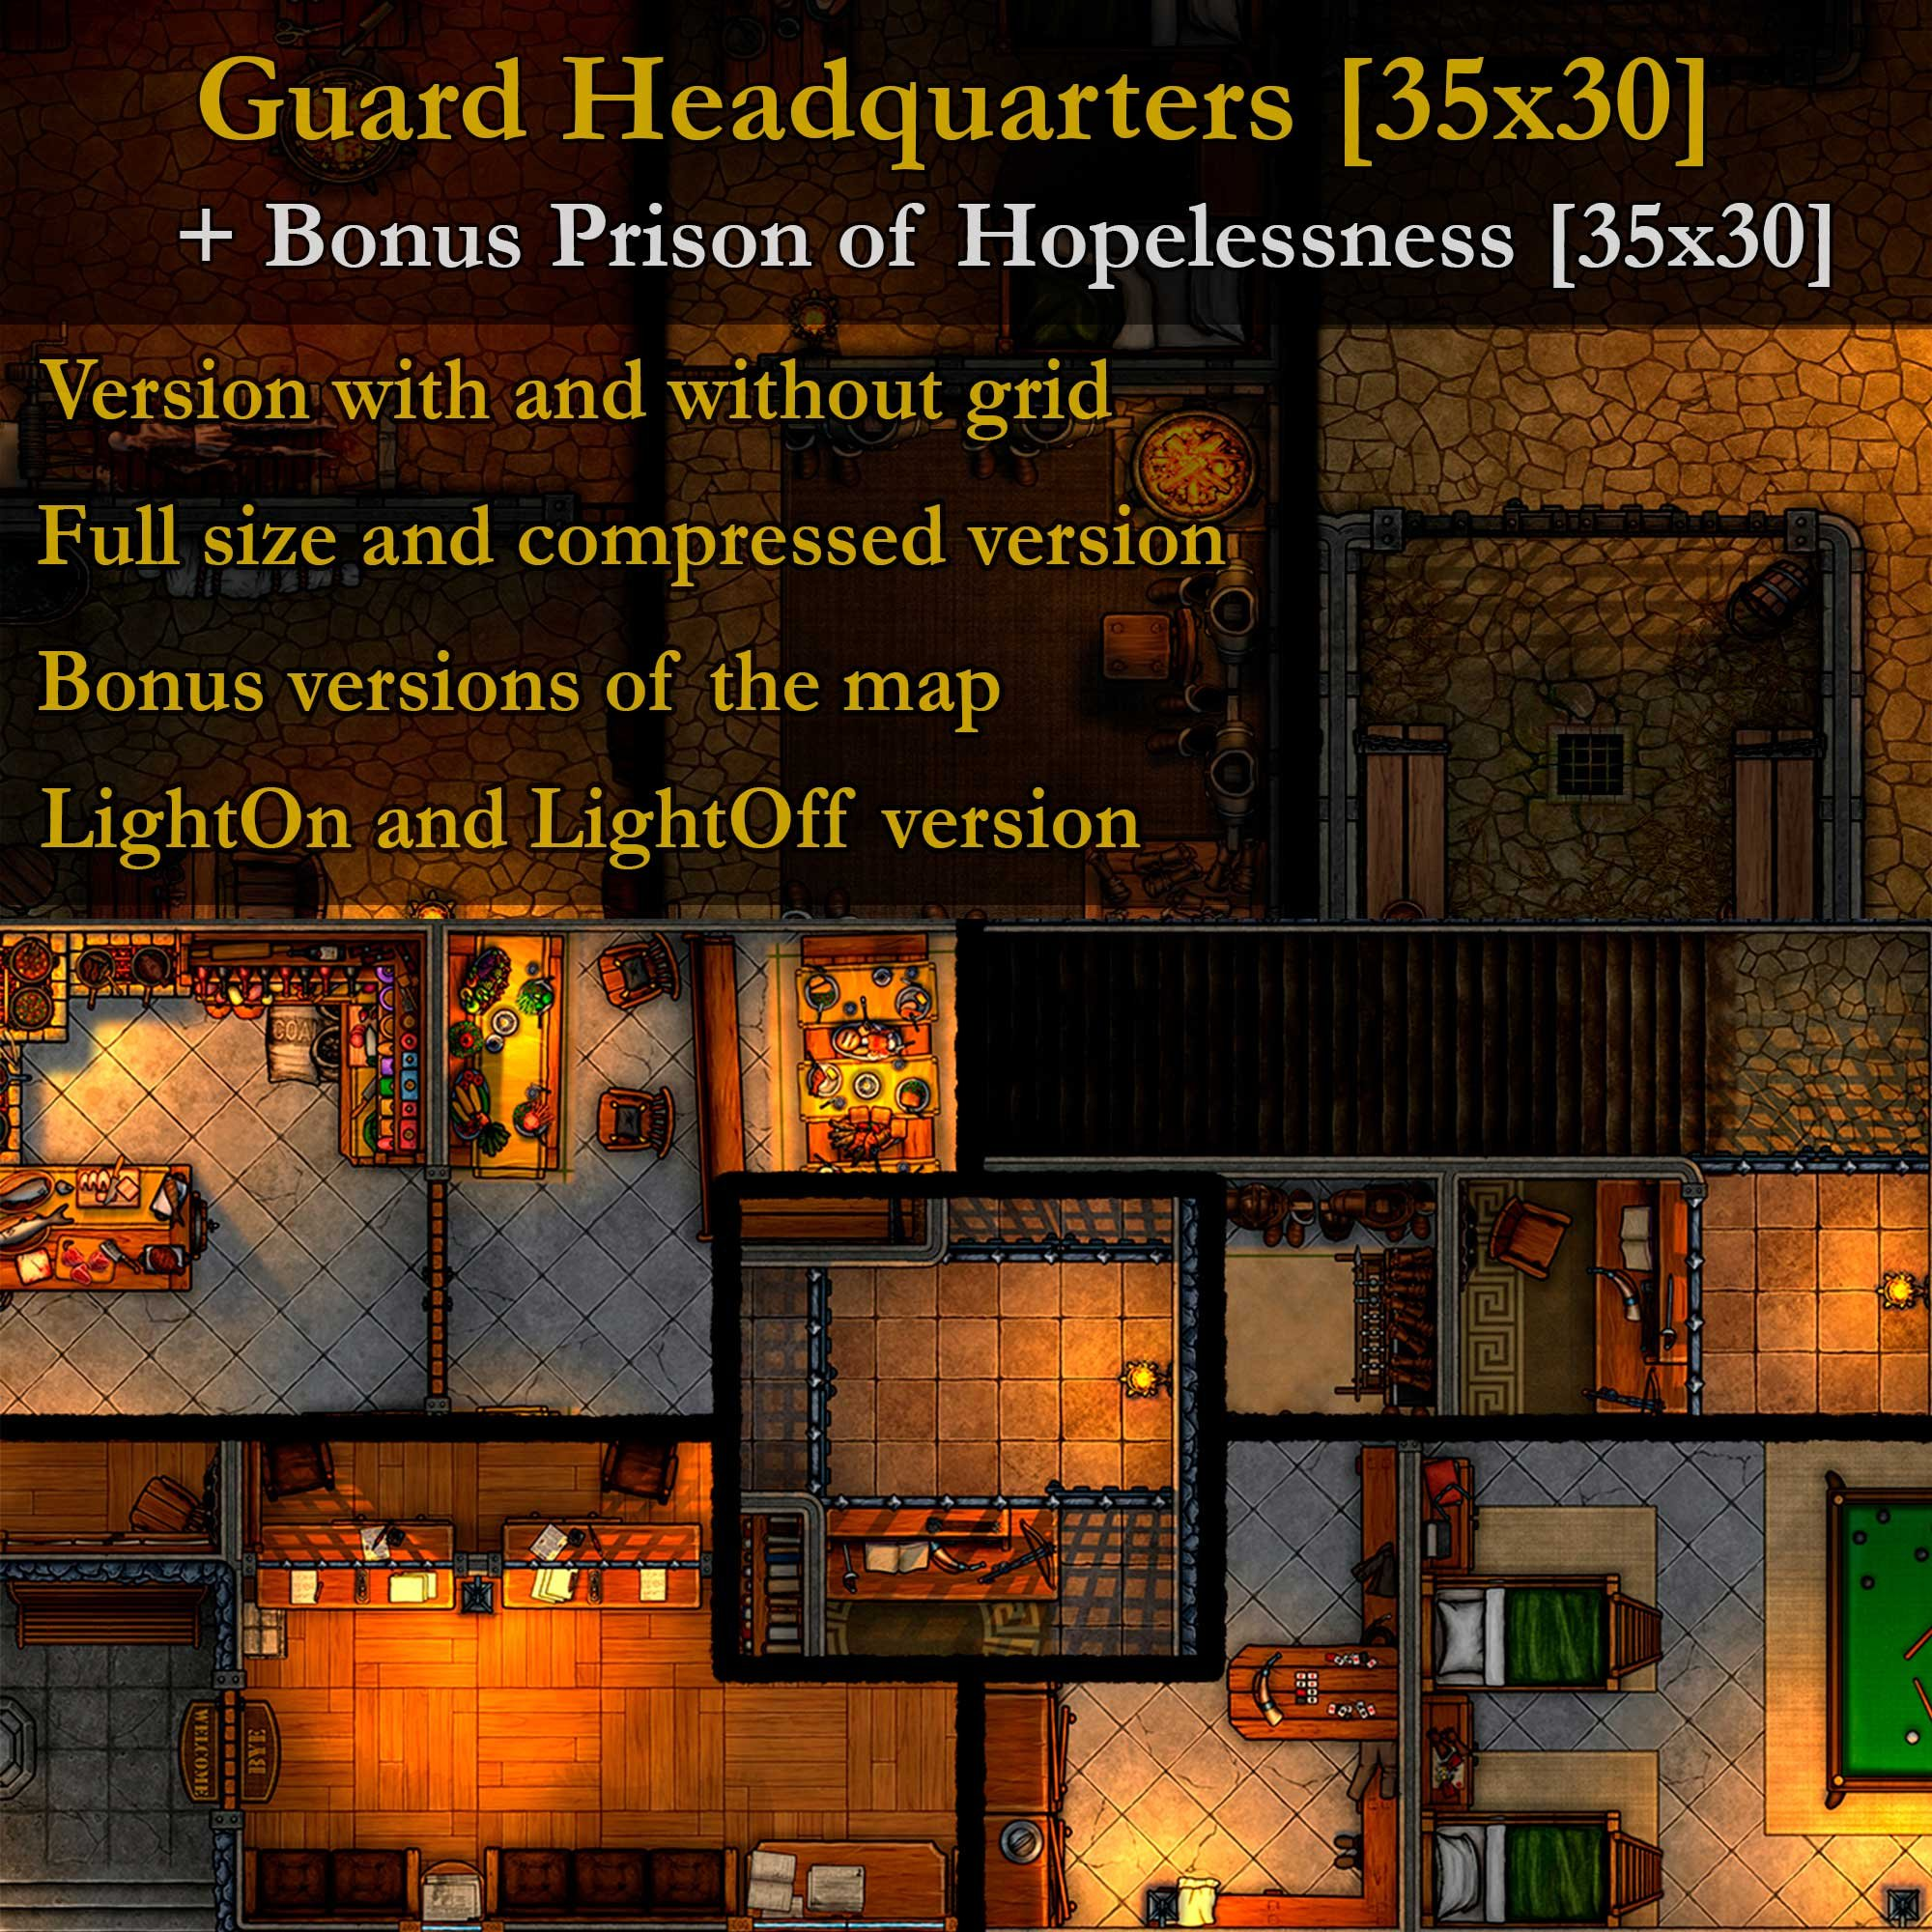 The headquarters of the guards and the prison of hopelessness. Two large maps linked together.